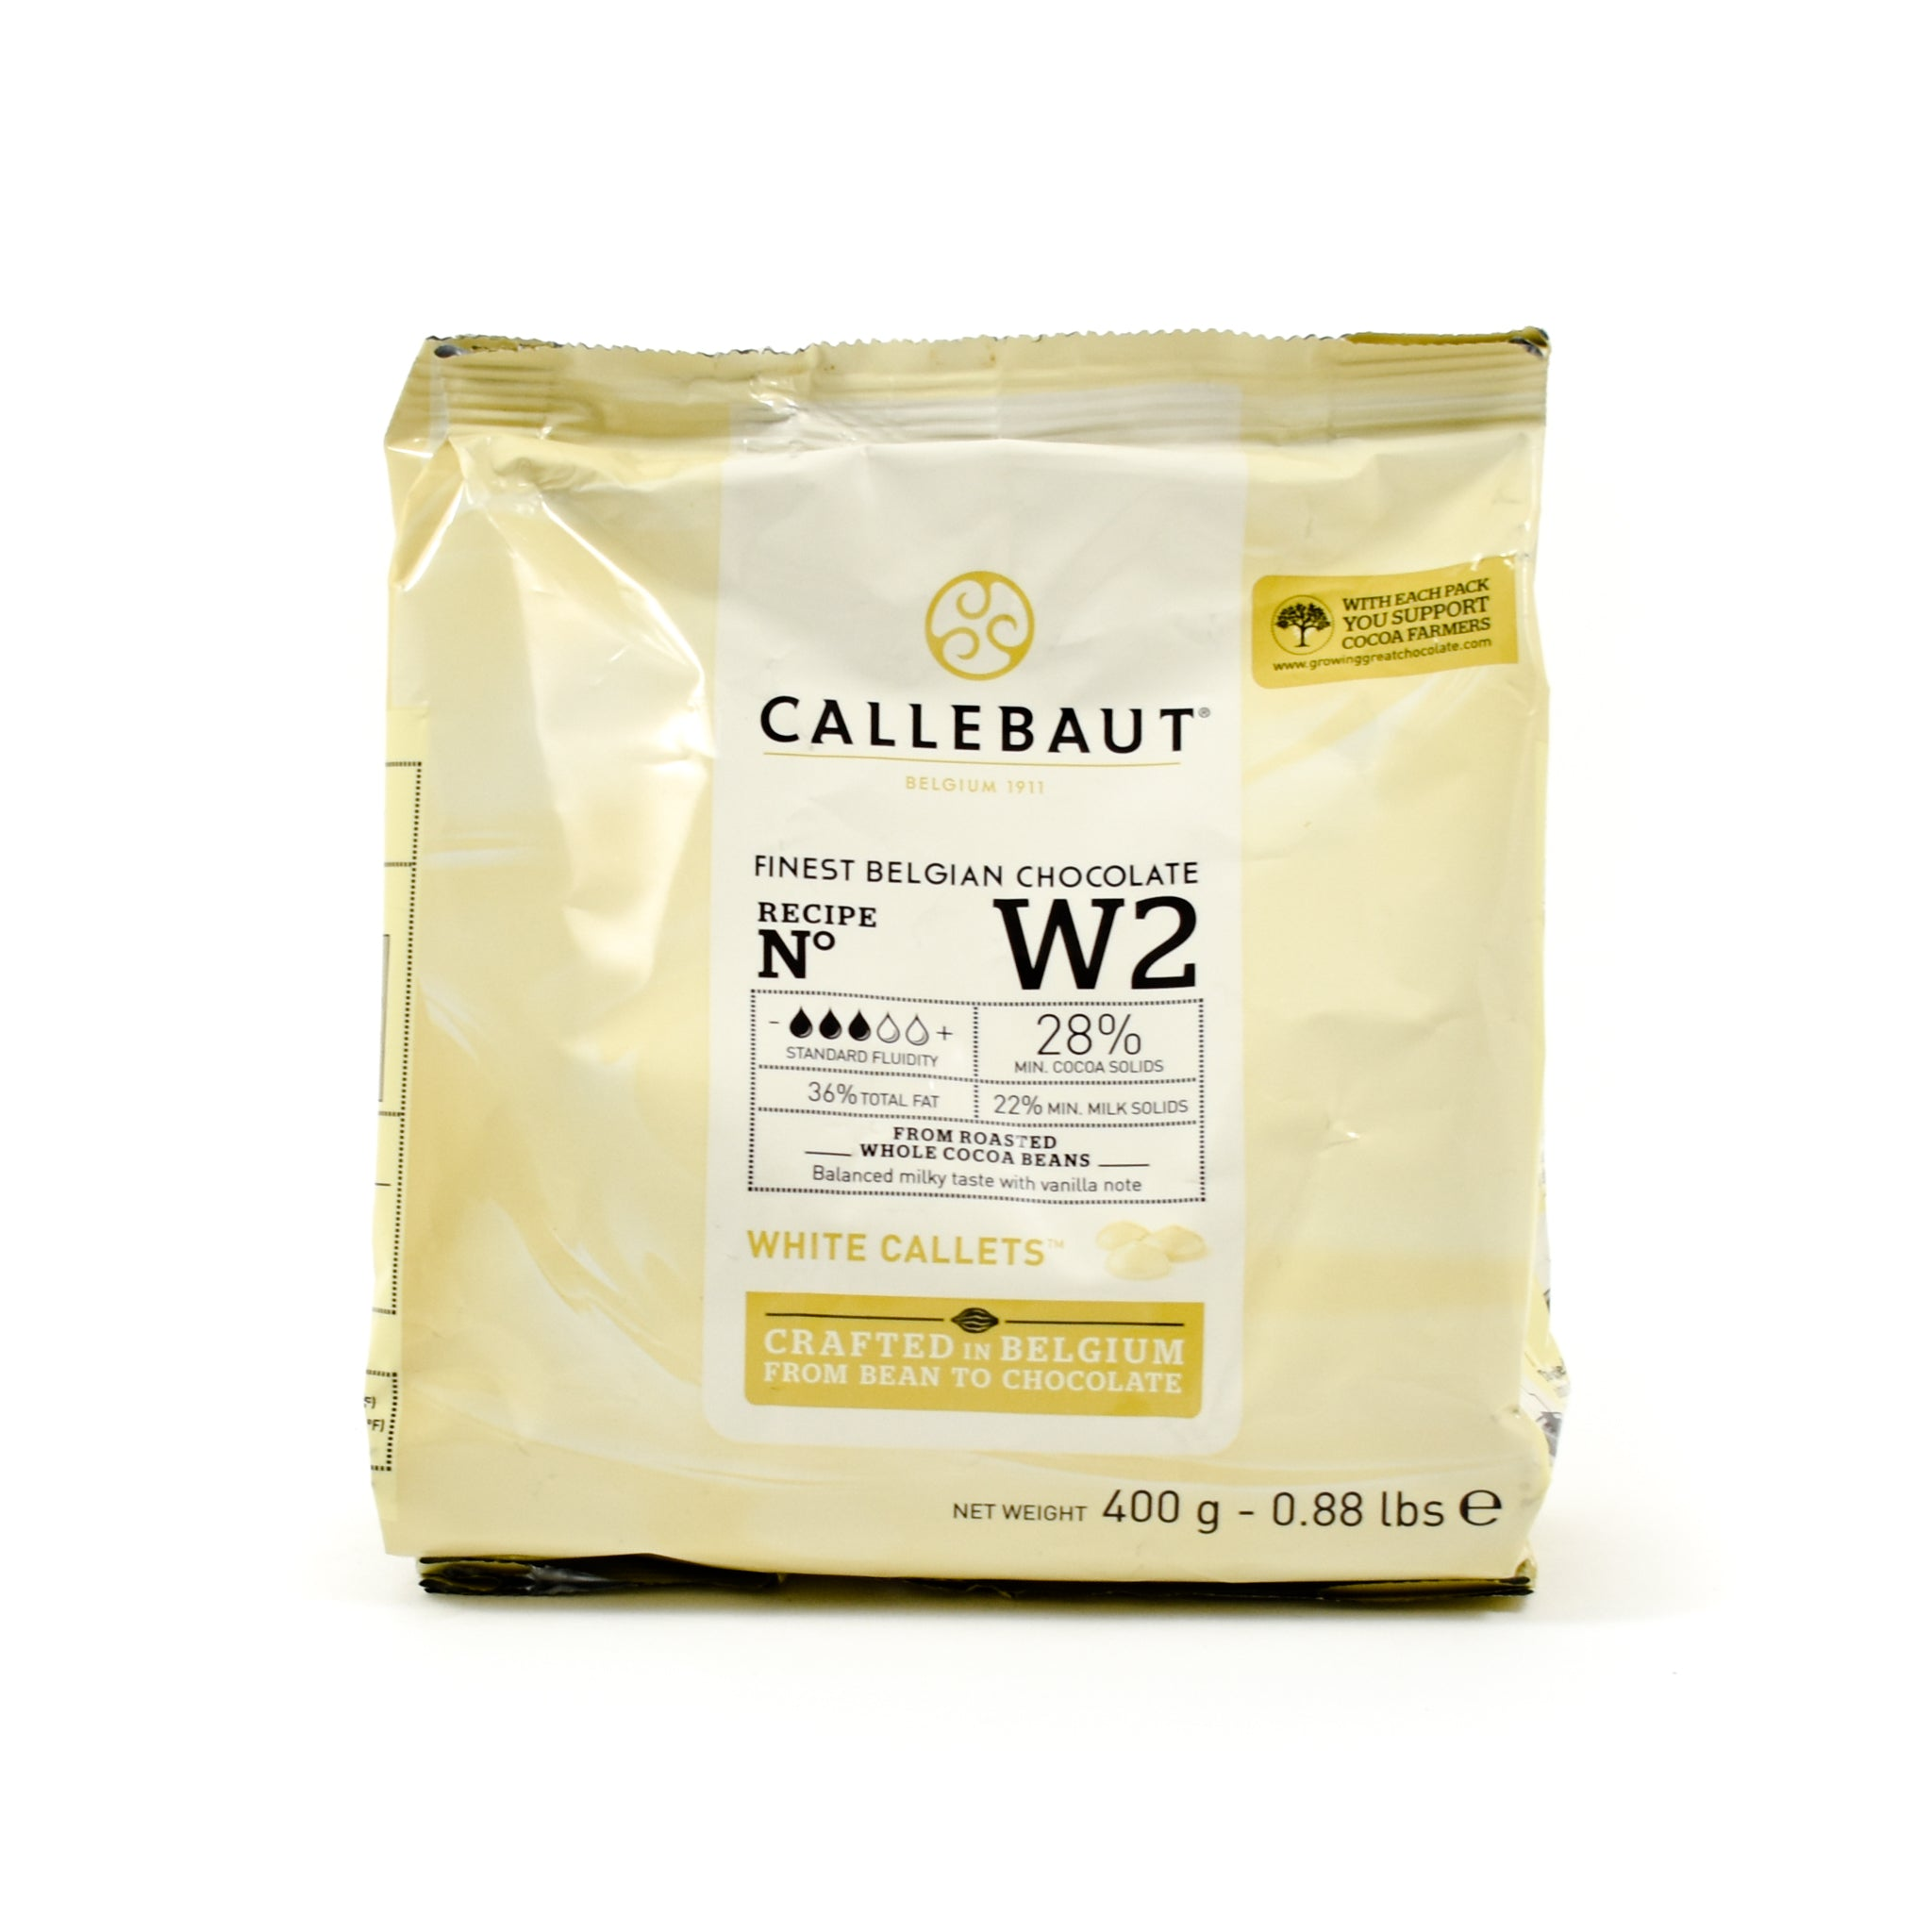 Sous Chef Callebaut White Chocolate Couverture 400g Ingredients Baking Ingredients Cooking Chocolate